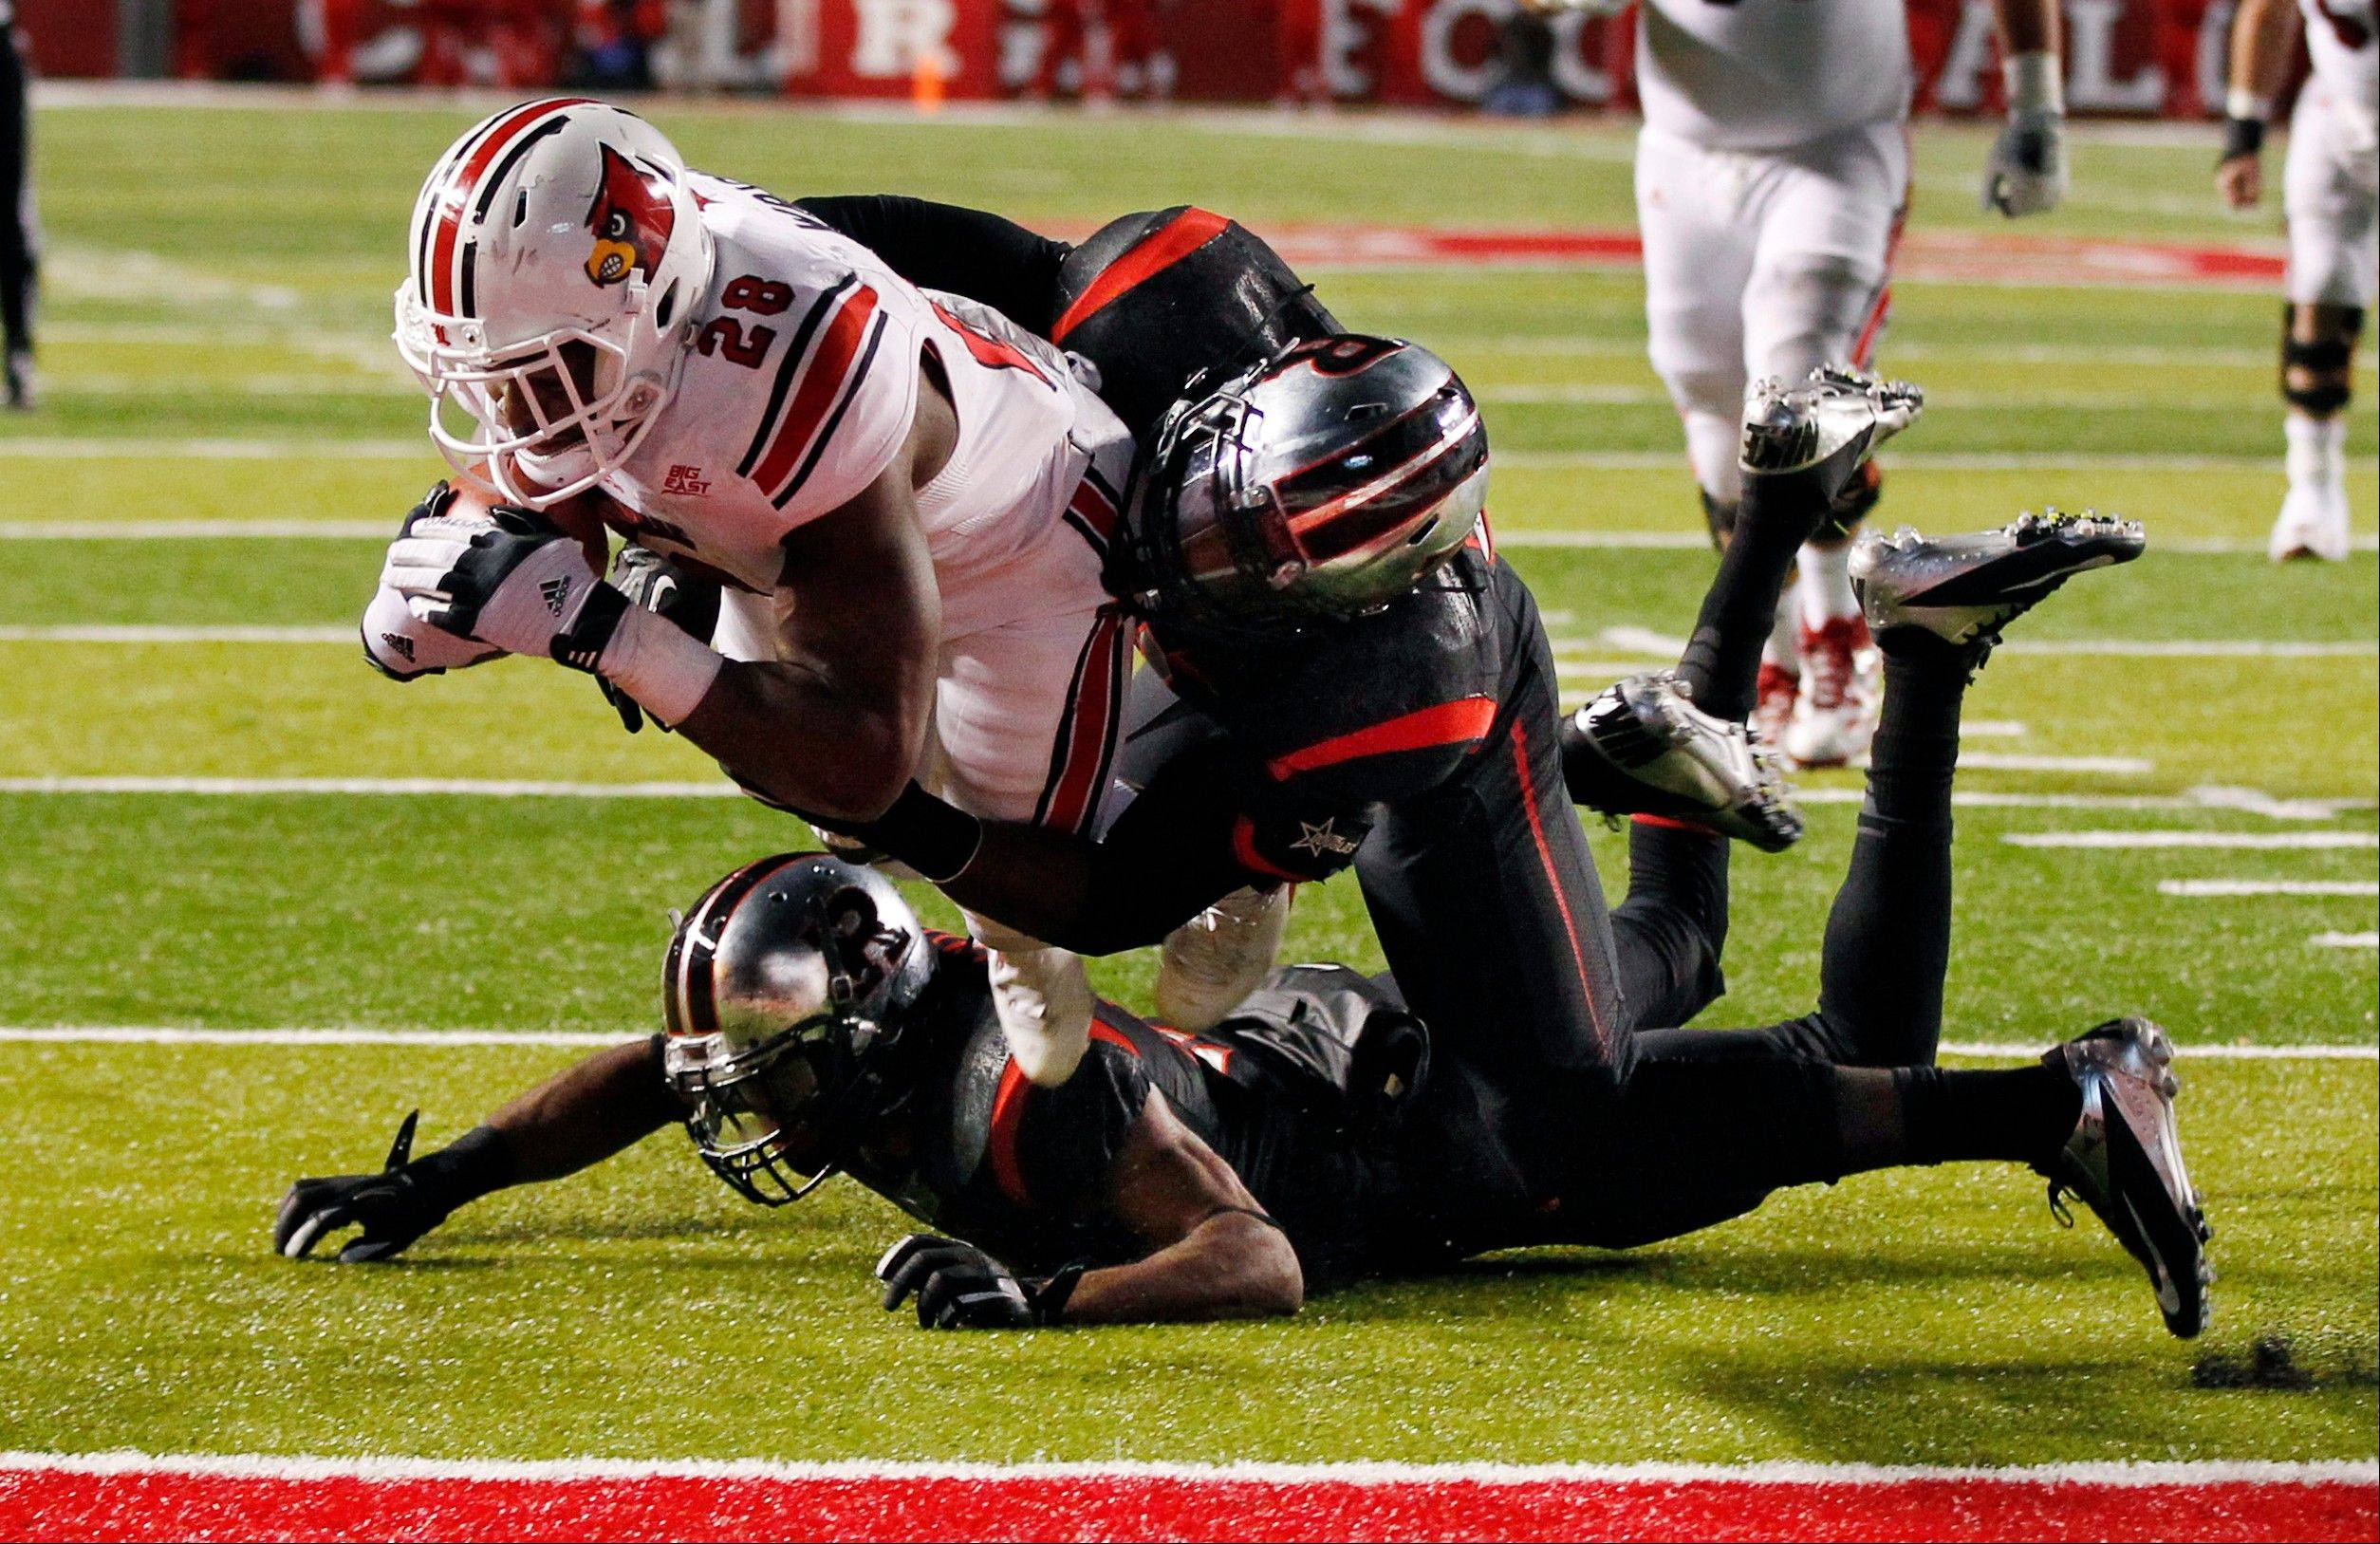 Louisville running back Jeremy Wright (28) dives over Rutgers defenders for a touchdown during the second half of an NCAA college football game in Piscataway, N.J., Thursday, Nov. 29, 2012. Louisville won 20-17. (AP Photo/Mel Evans)